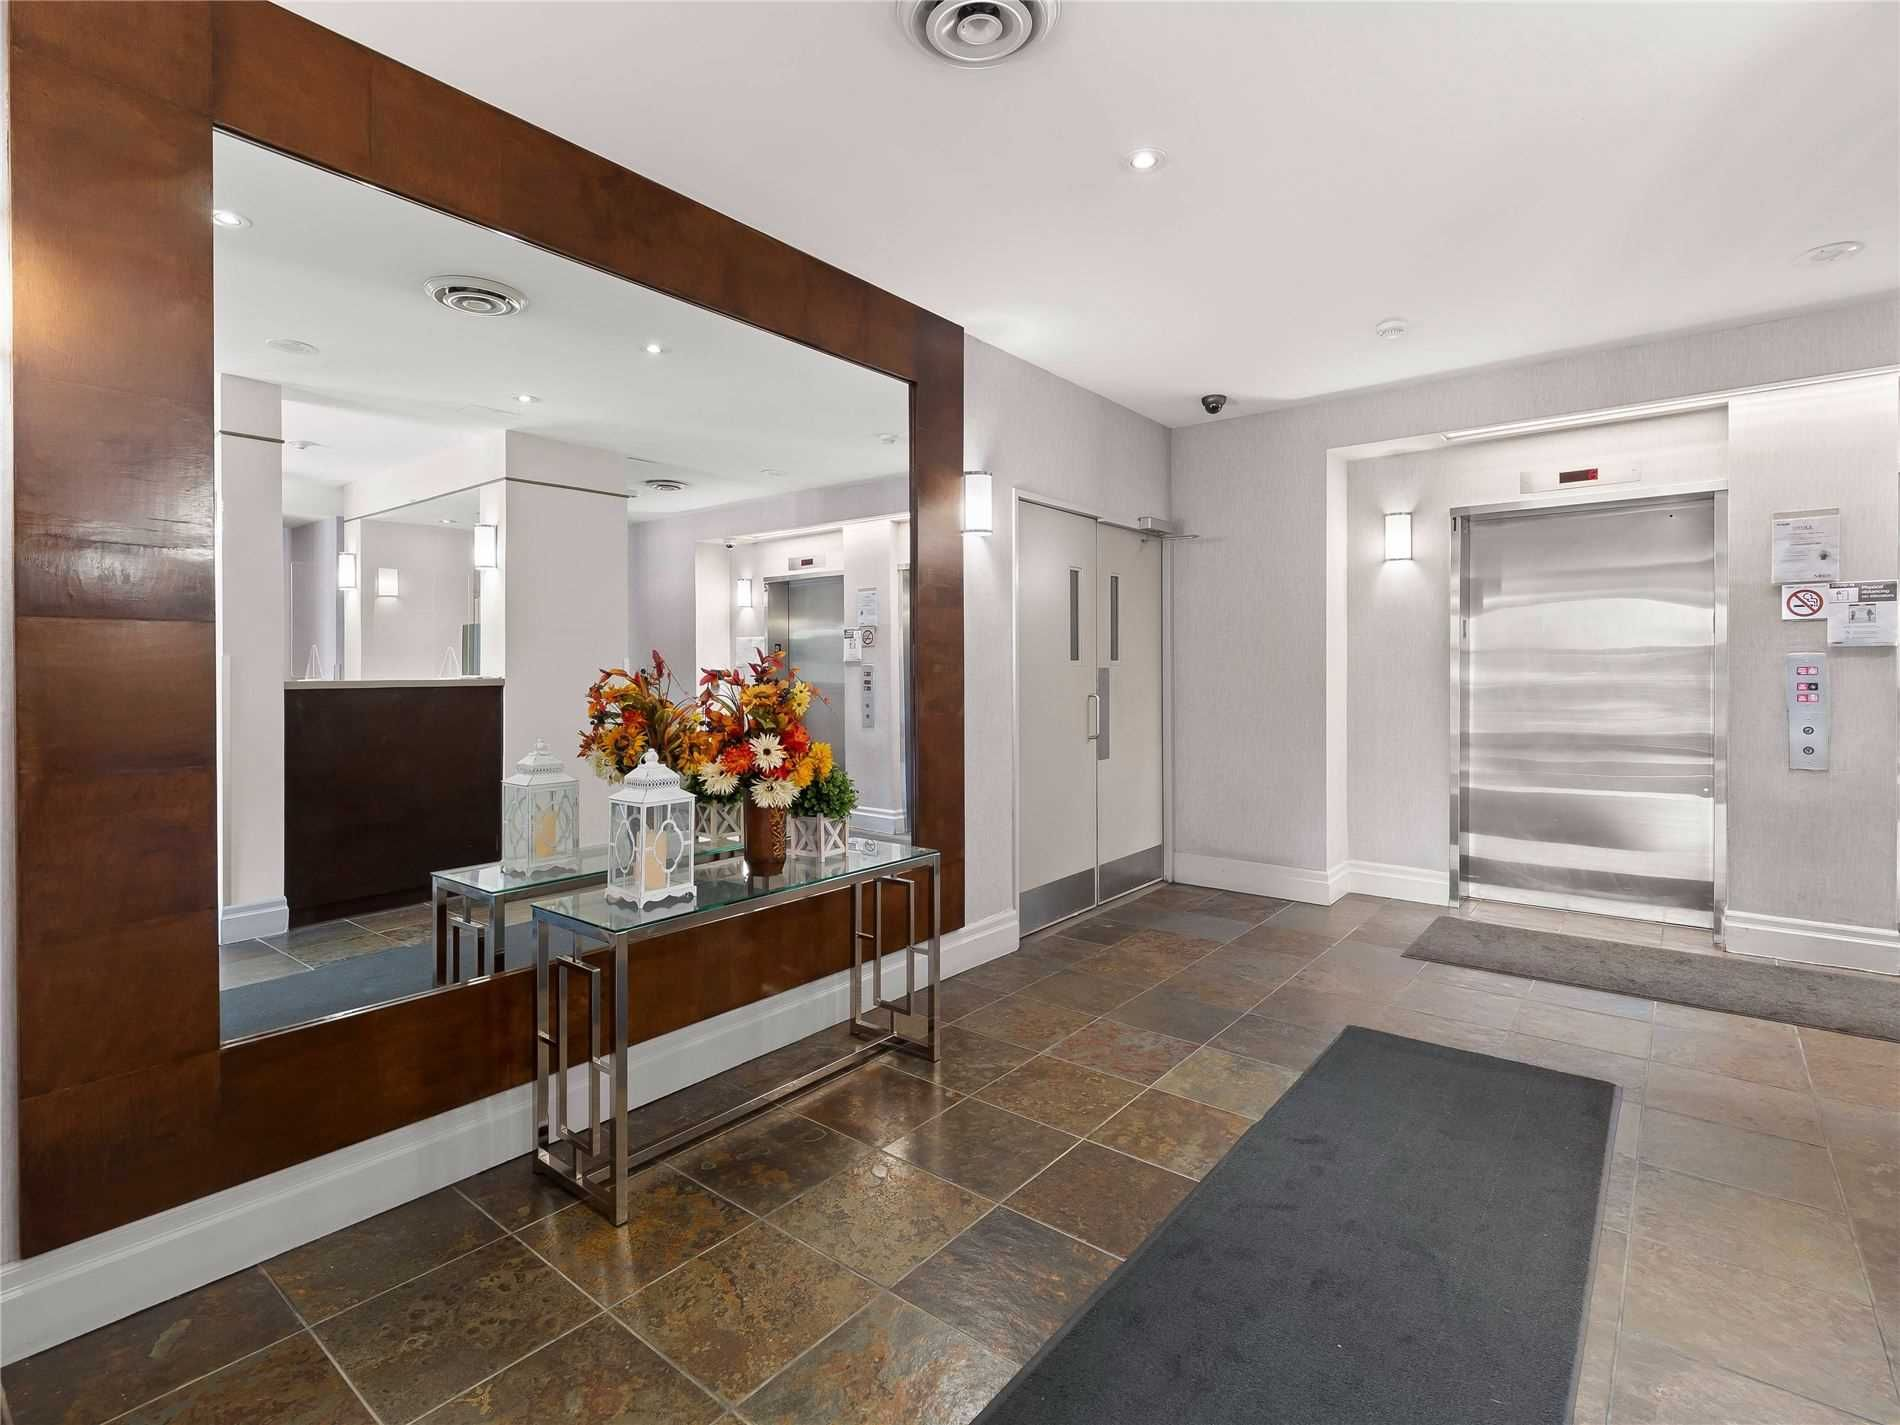 2088 Lawrence Ave W, unit 411 for sale in Toronto - image #2